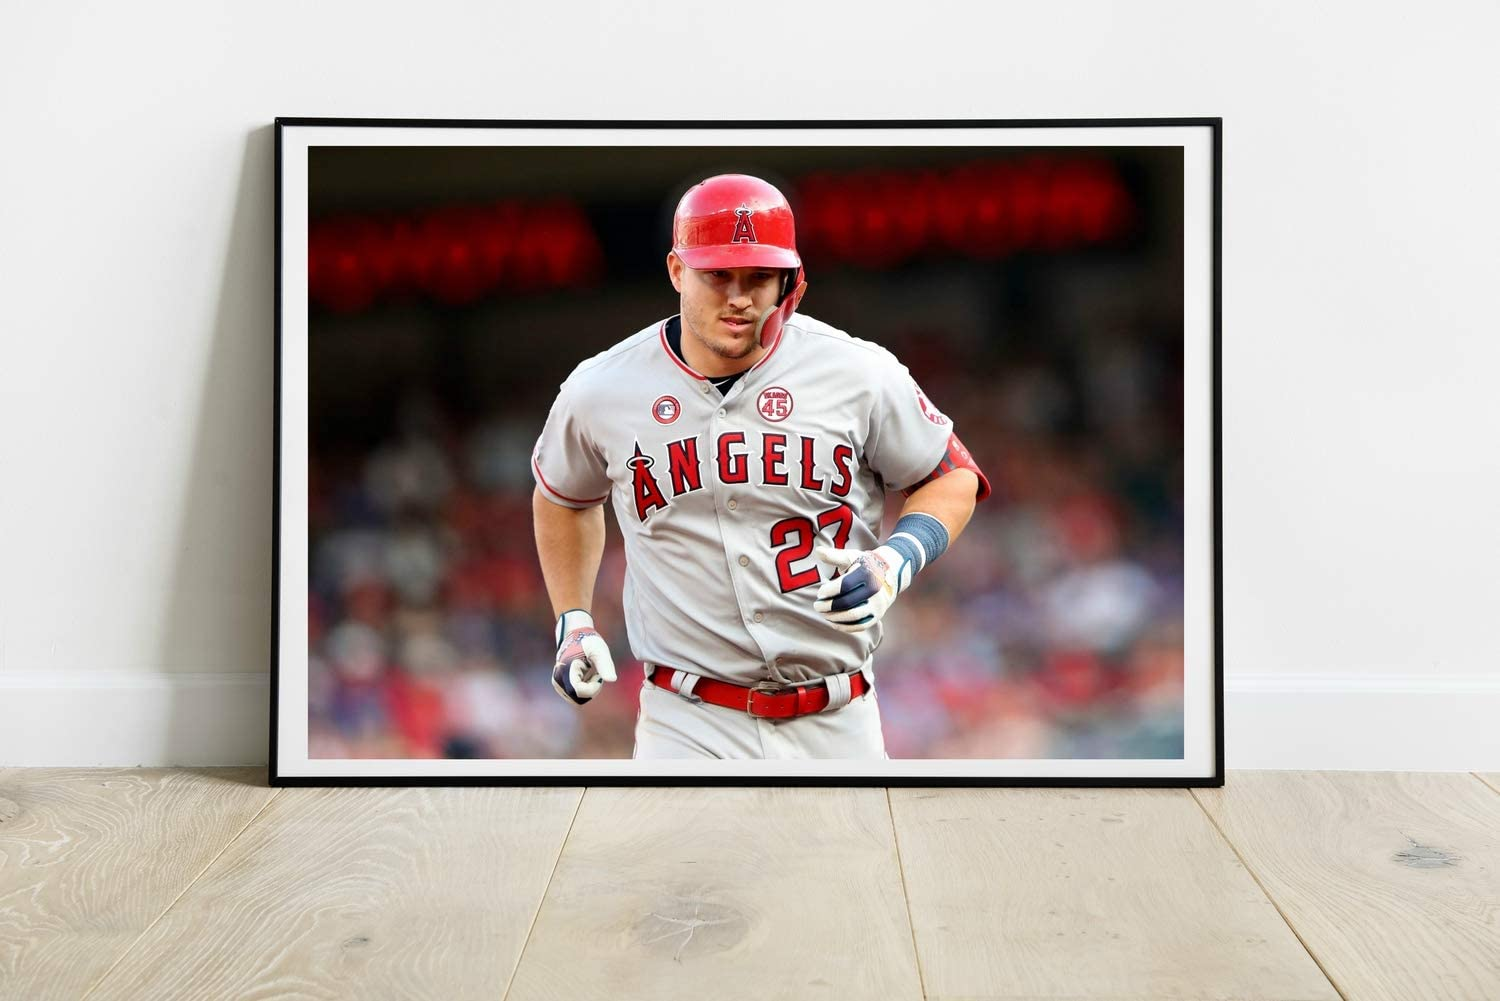 Angels Player Poster Compatible with Mike Trout, Art Print, Wall Decor for Bedroom Living Room Office College Room, Great Gift Idea, Decoration Unframed Size (S - 11